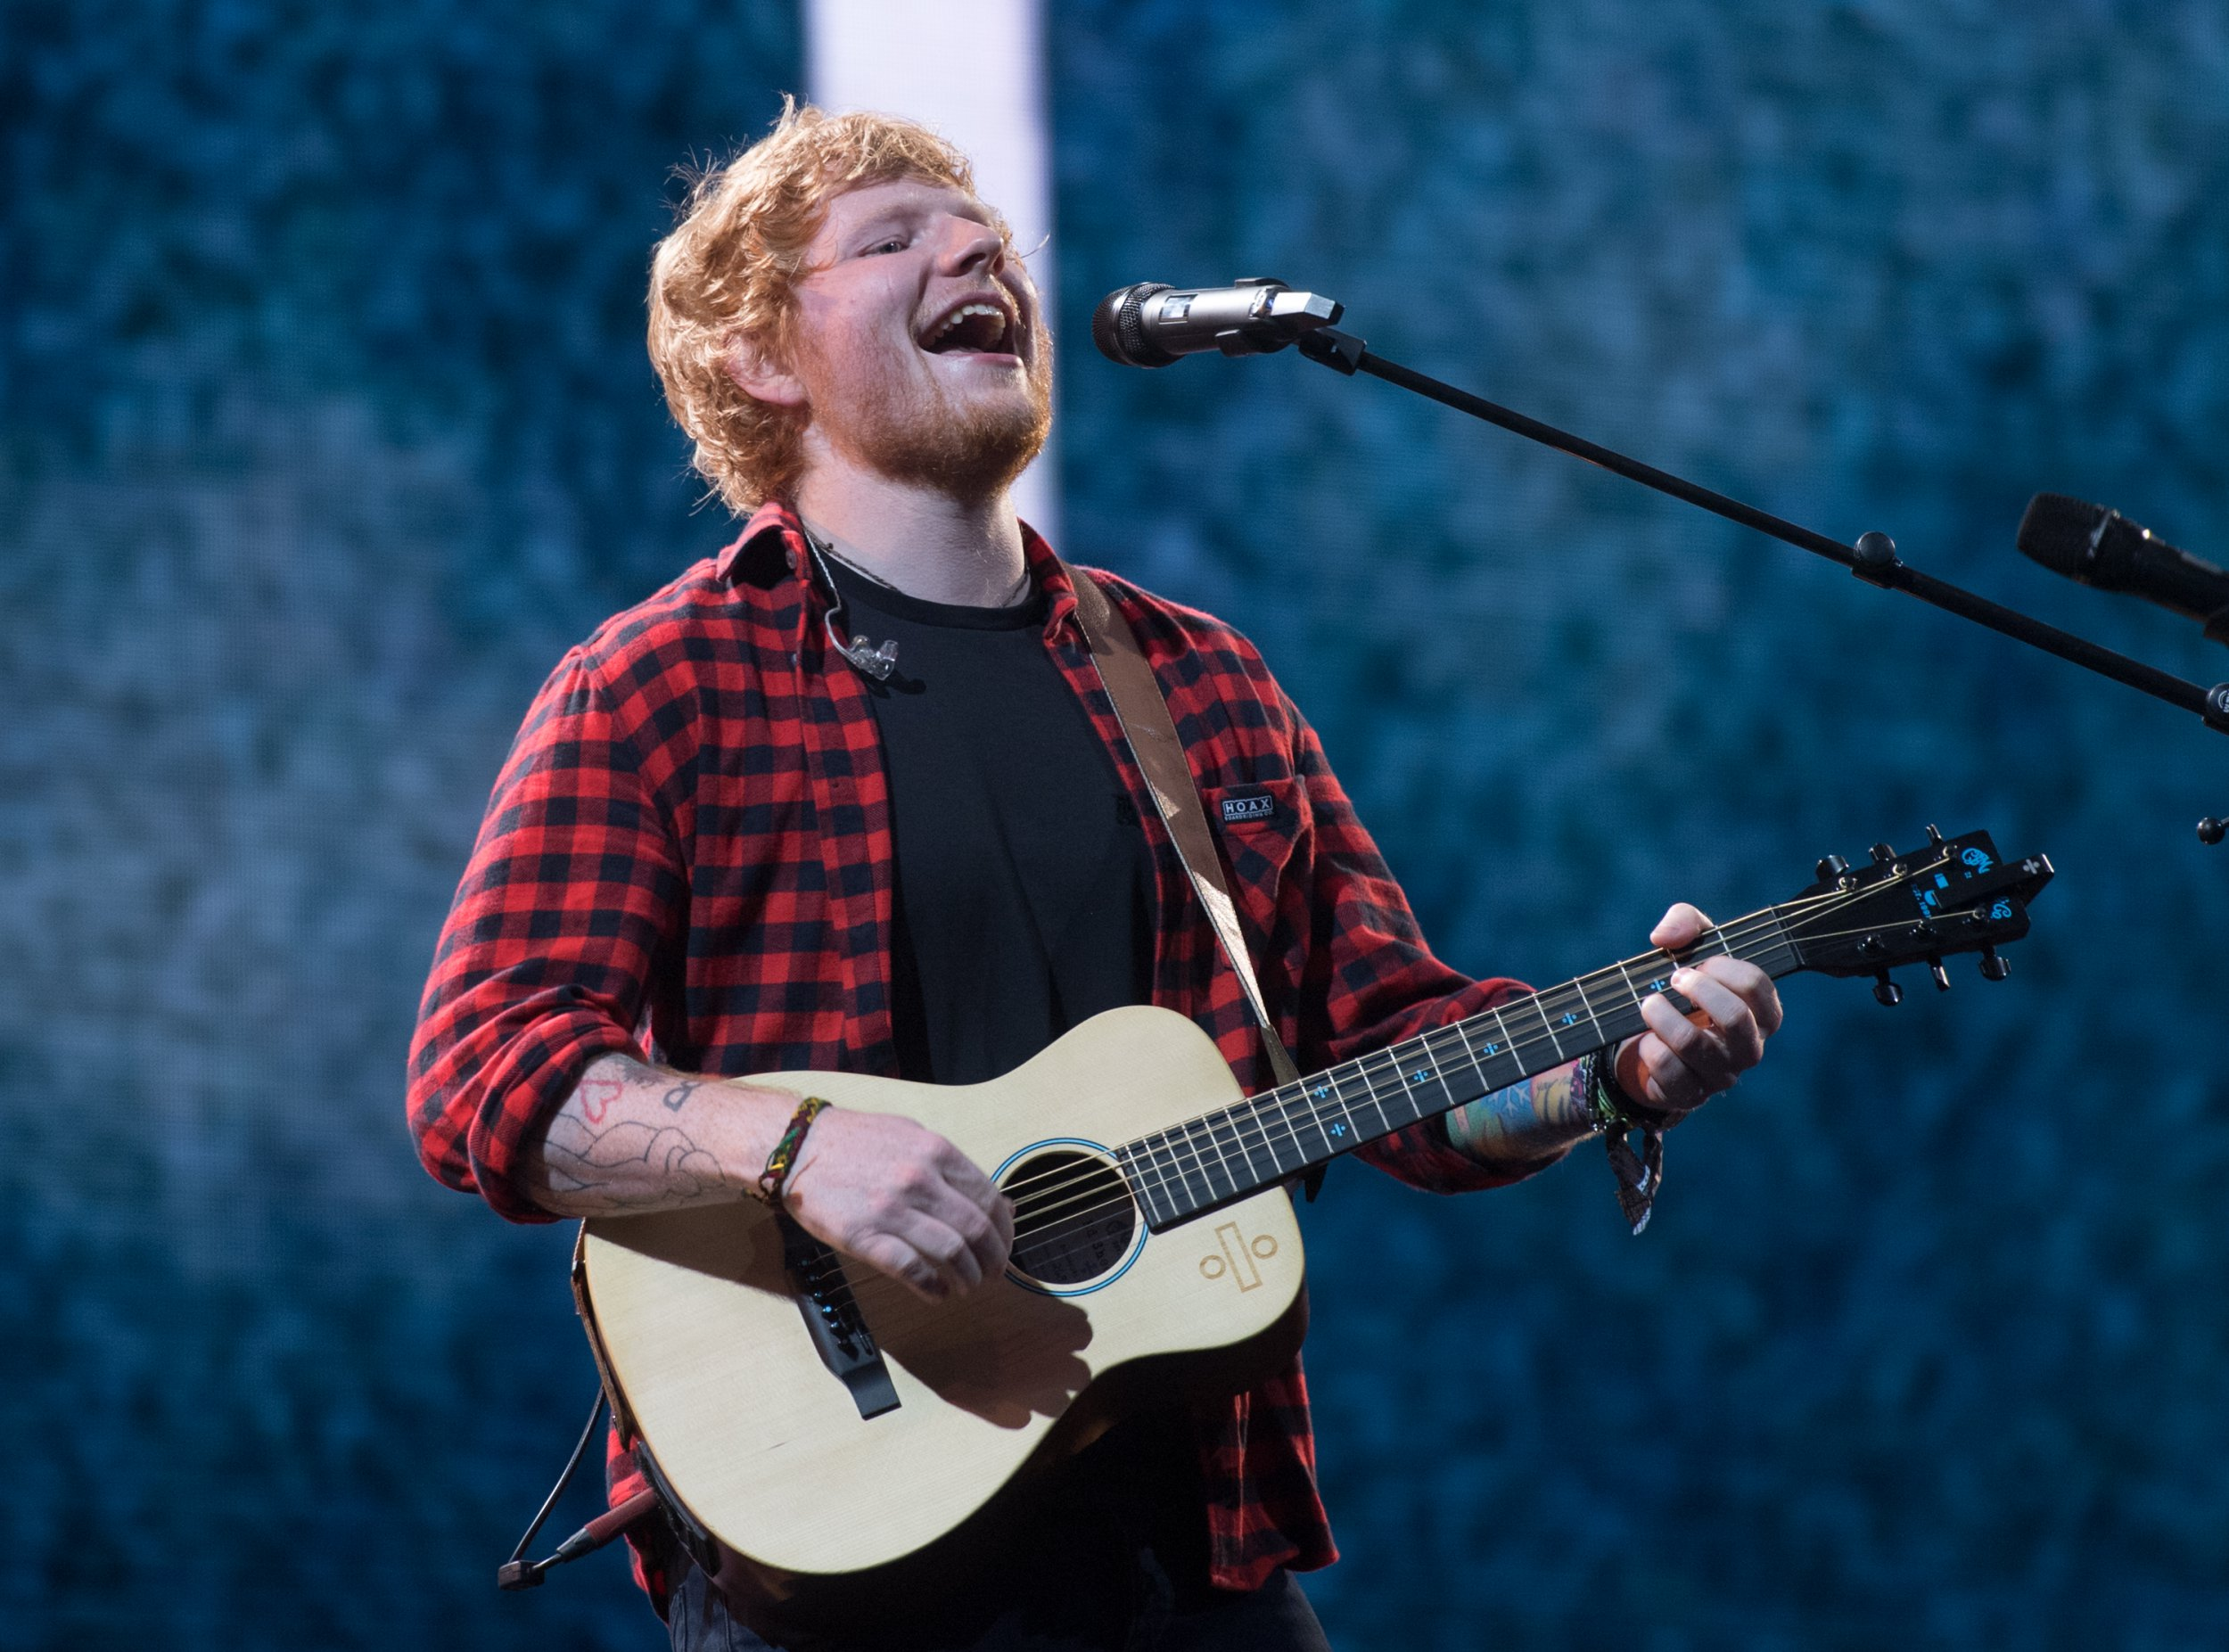 Ed Sheeran insists he 'isn't stitching fans up' as he battles 'really negative' ticket touts